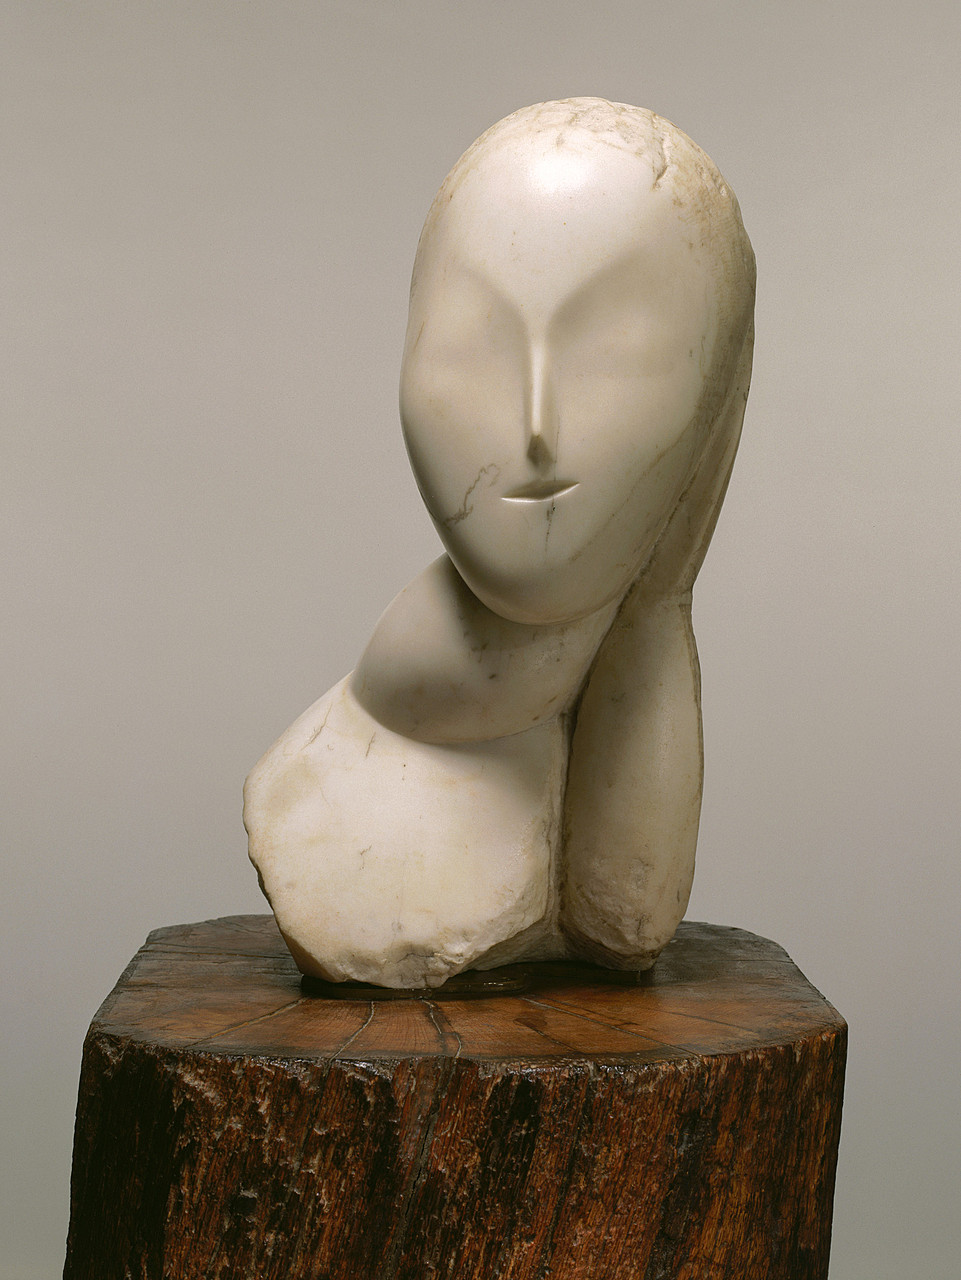 Constantin Brancusi, Muse, 1912. Marble, 18 1/4 x 9 x 8 3/4 inches (46.4 x 22.9 x 22.2 cm); cycladic figurines